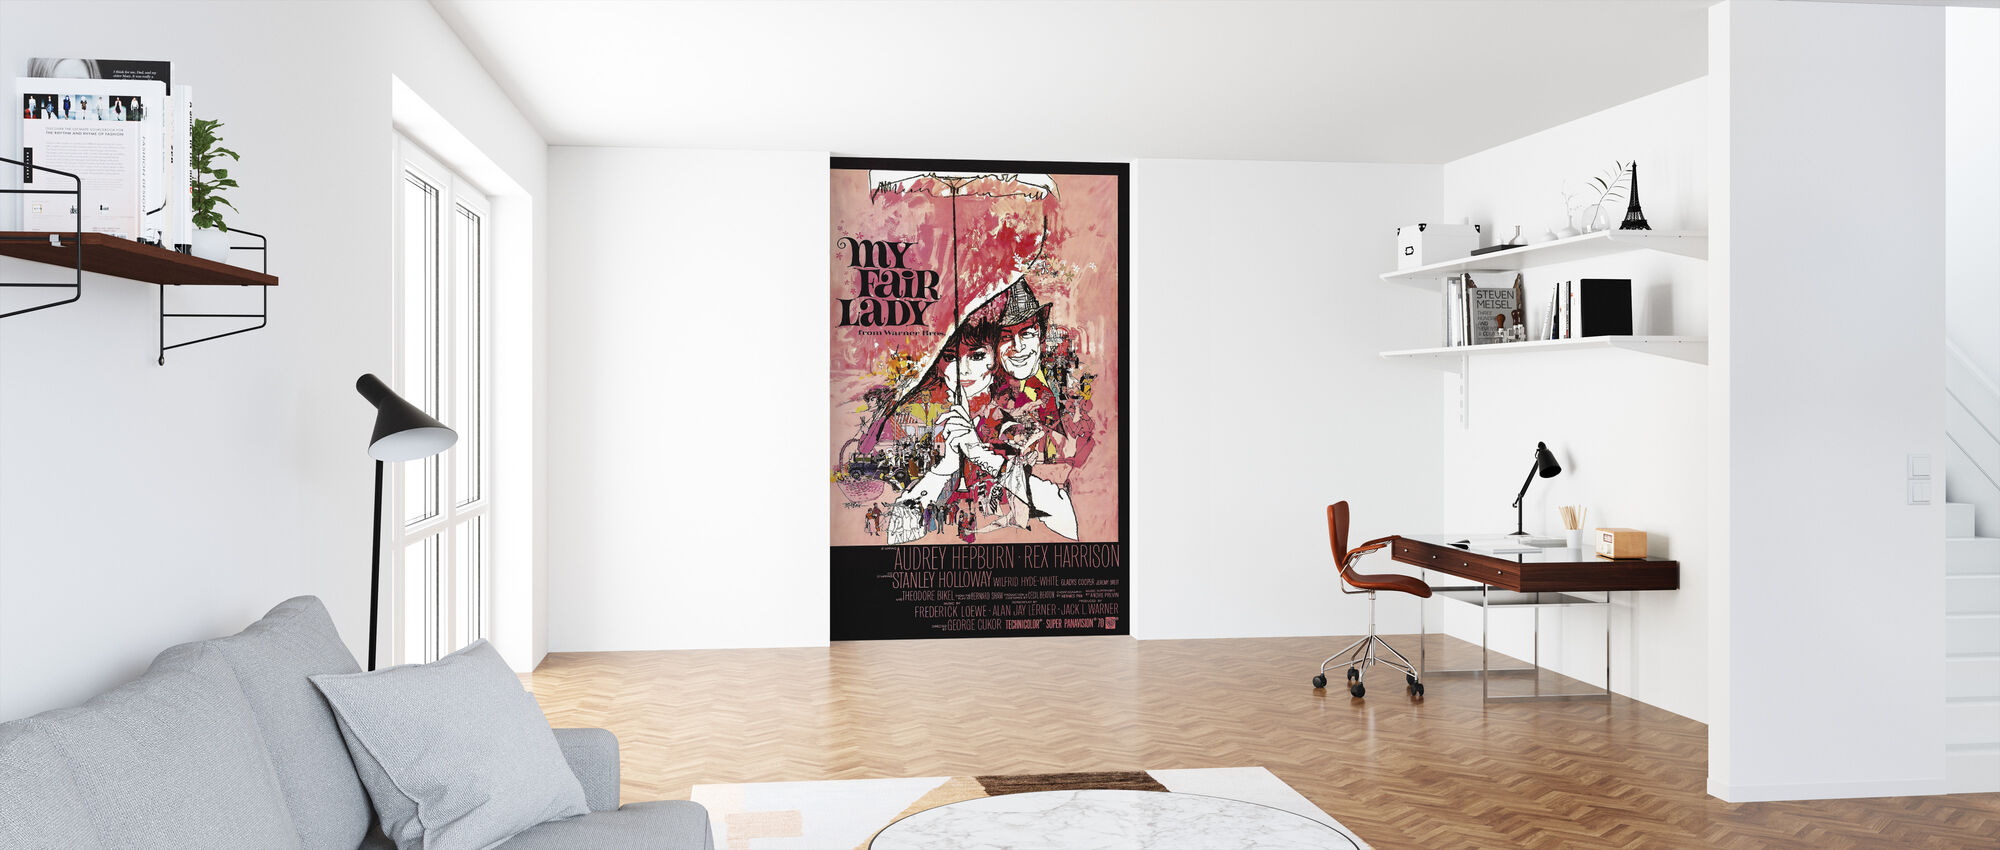 Filmposter Mijn Fair Lady - Behang - Kantoor